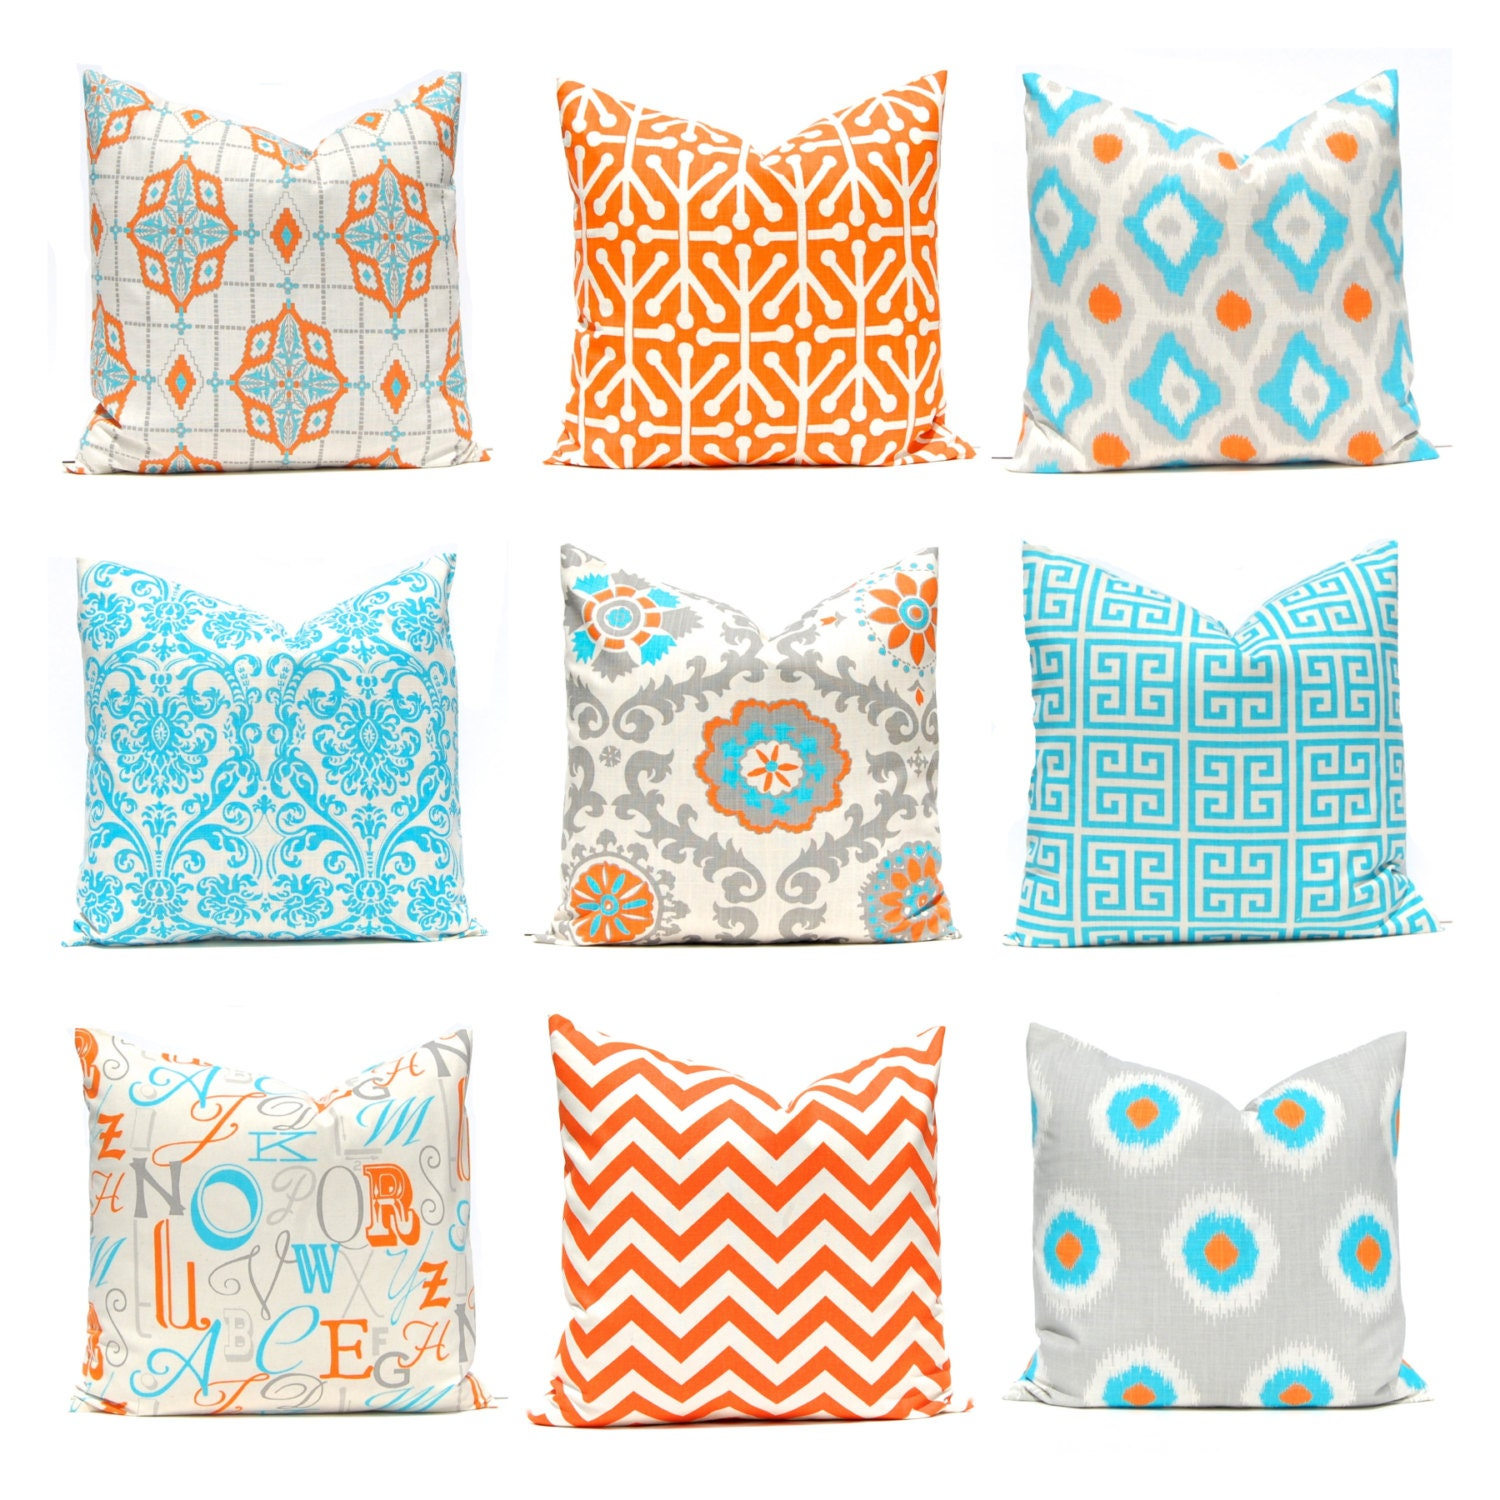 Etsy Throw Pillow Sets : Orange Turquoise Pillows 12 x 16 OR 12 x 18 by FestiveHomeDecor